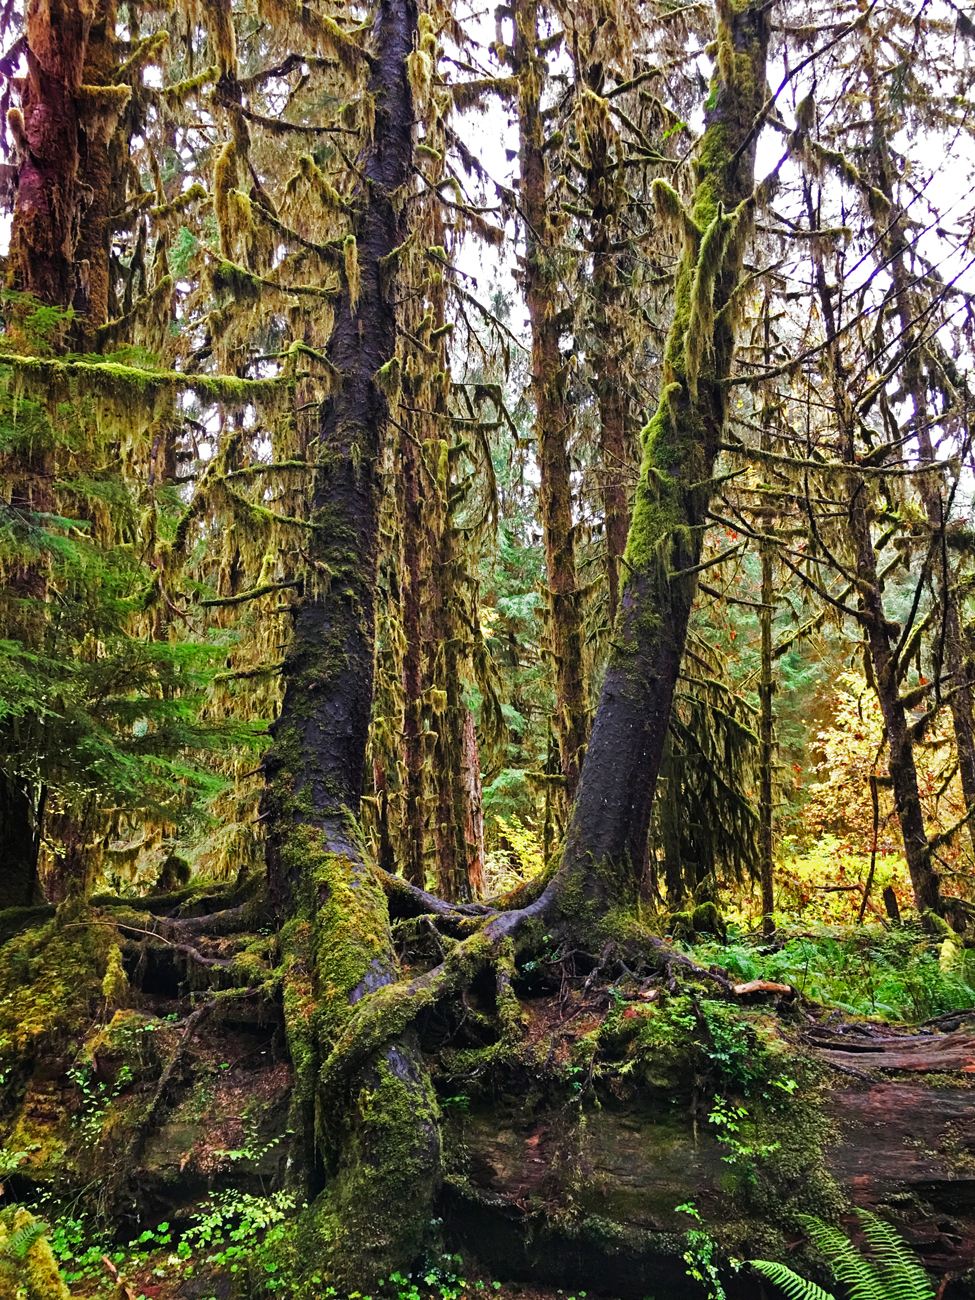 Nurse log with mature trees growing out of it in the Hoh